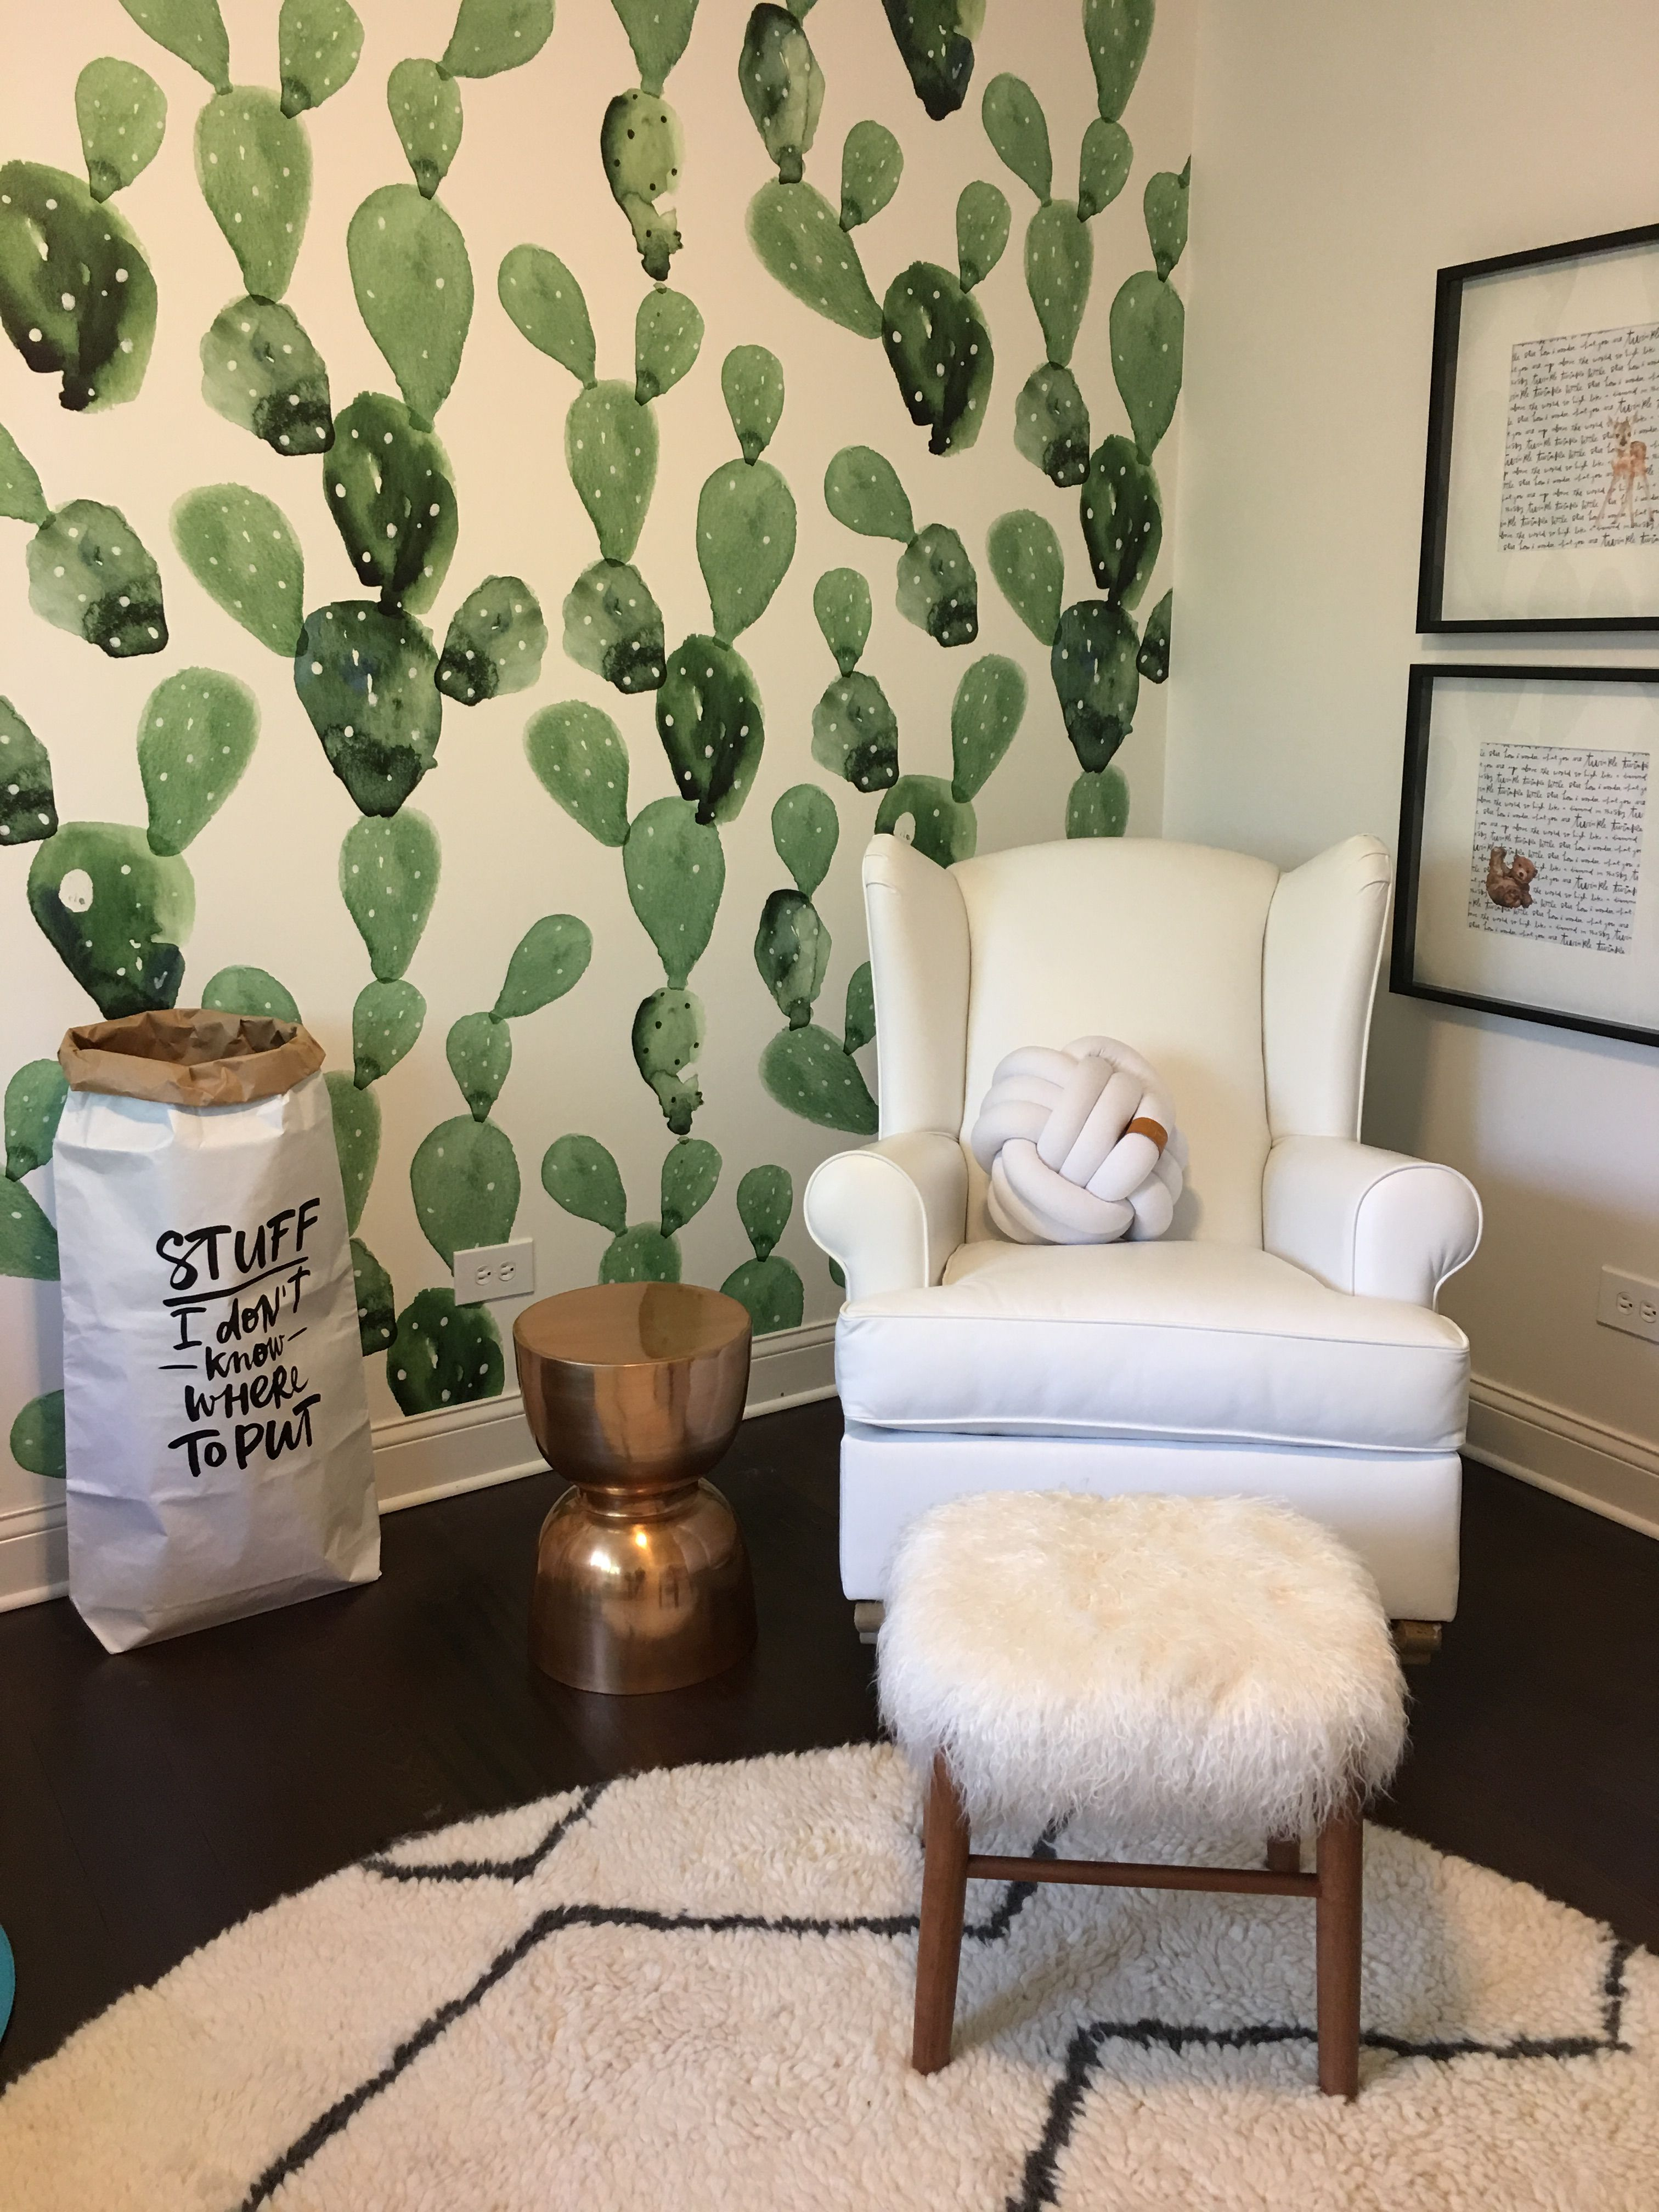 Cactus wallpaper by anewall pottery barn rocking chair and west